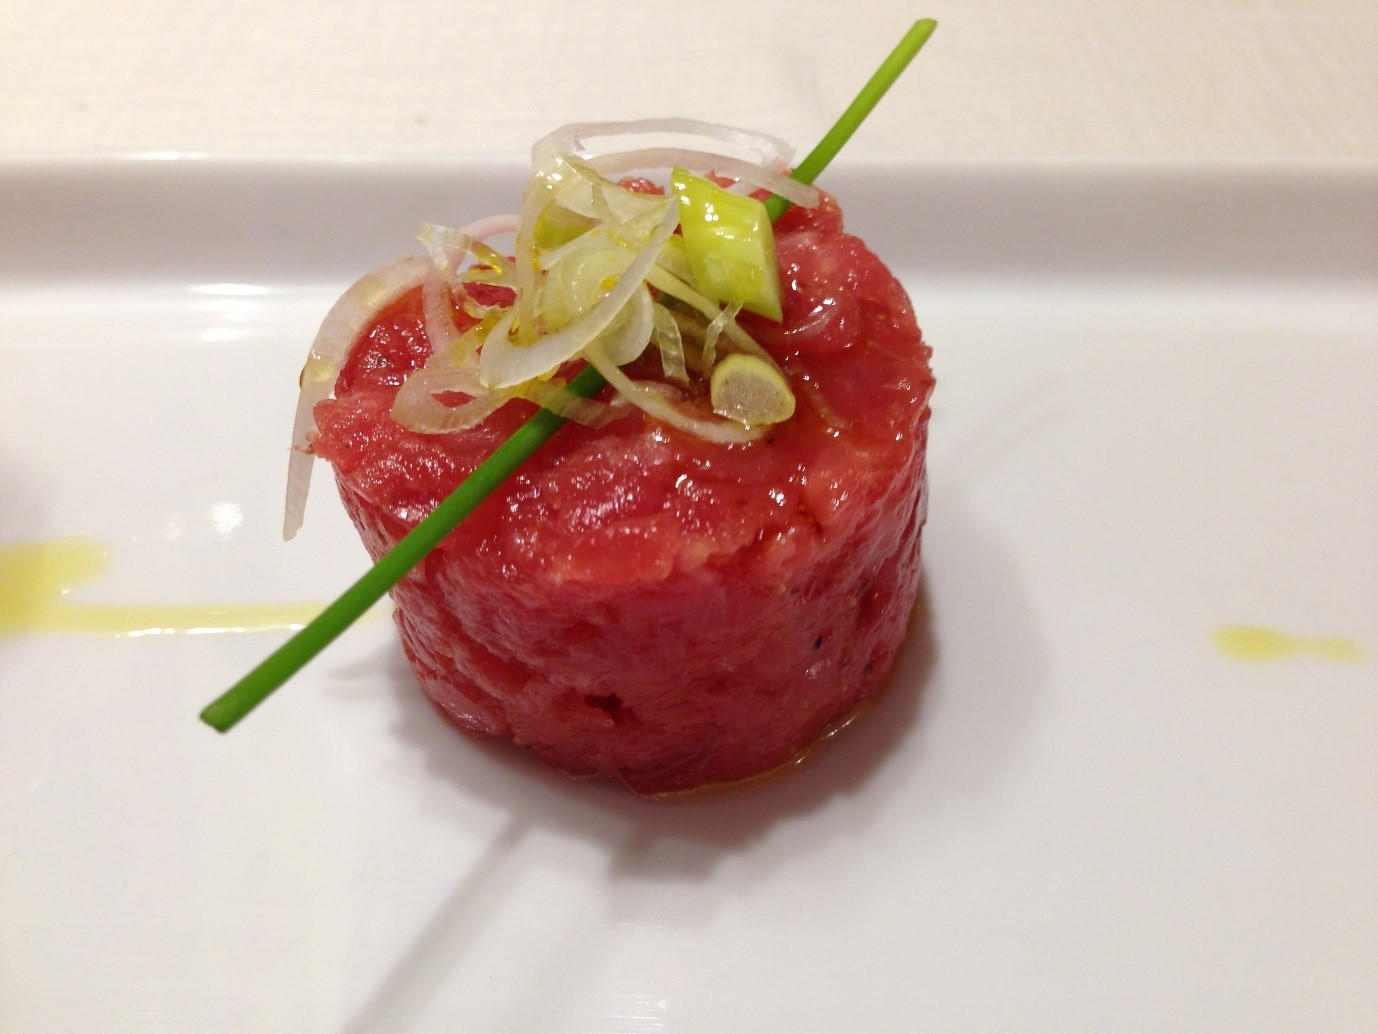 Raw minced veal